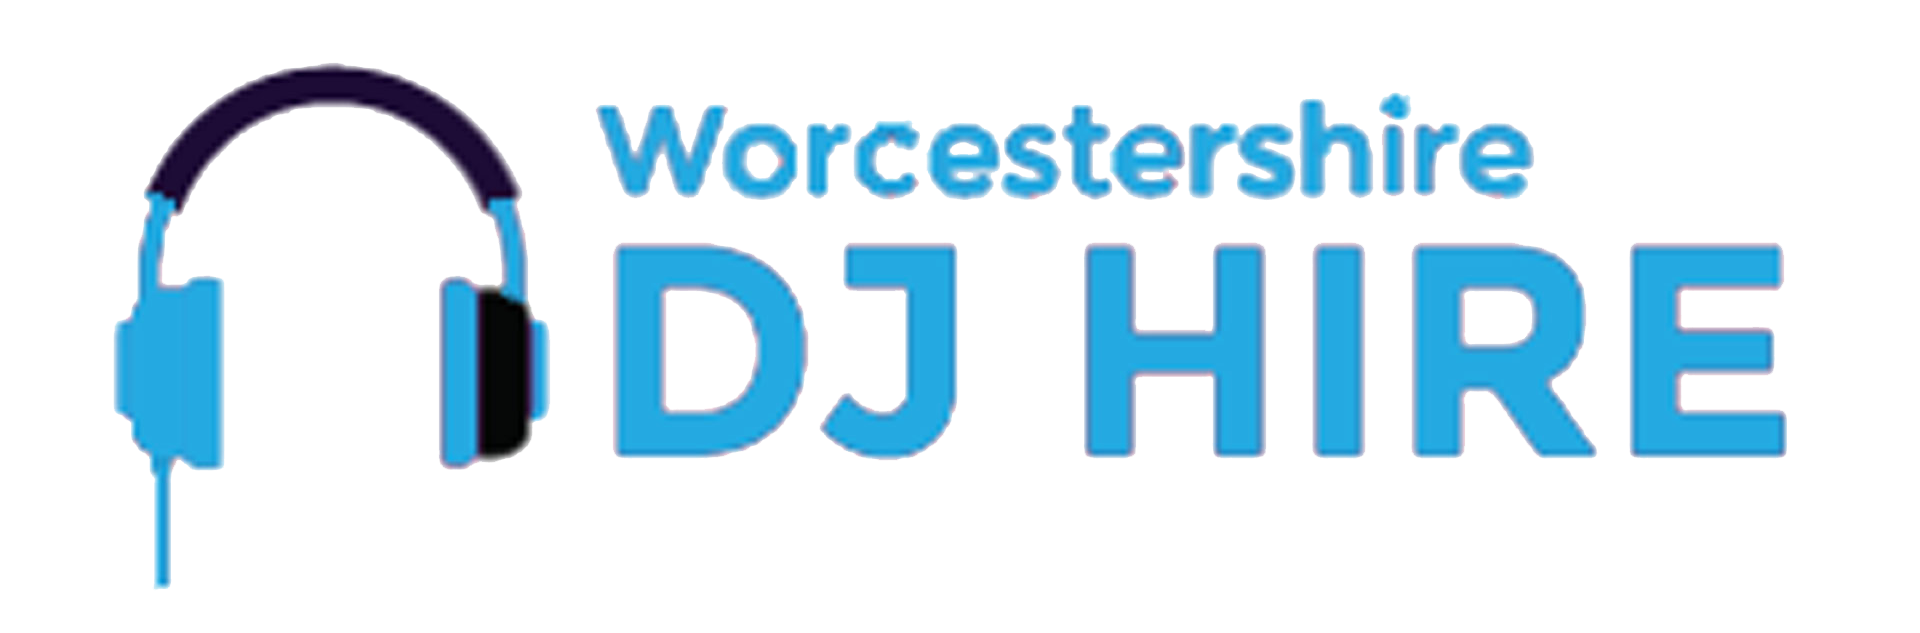 Disco service | Worcestershire DJ Hire